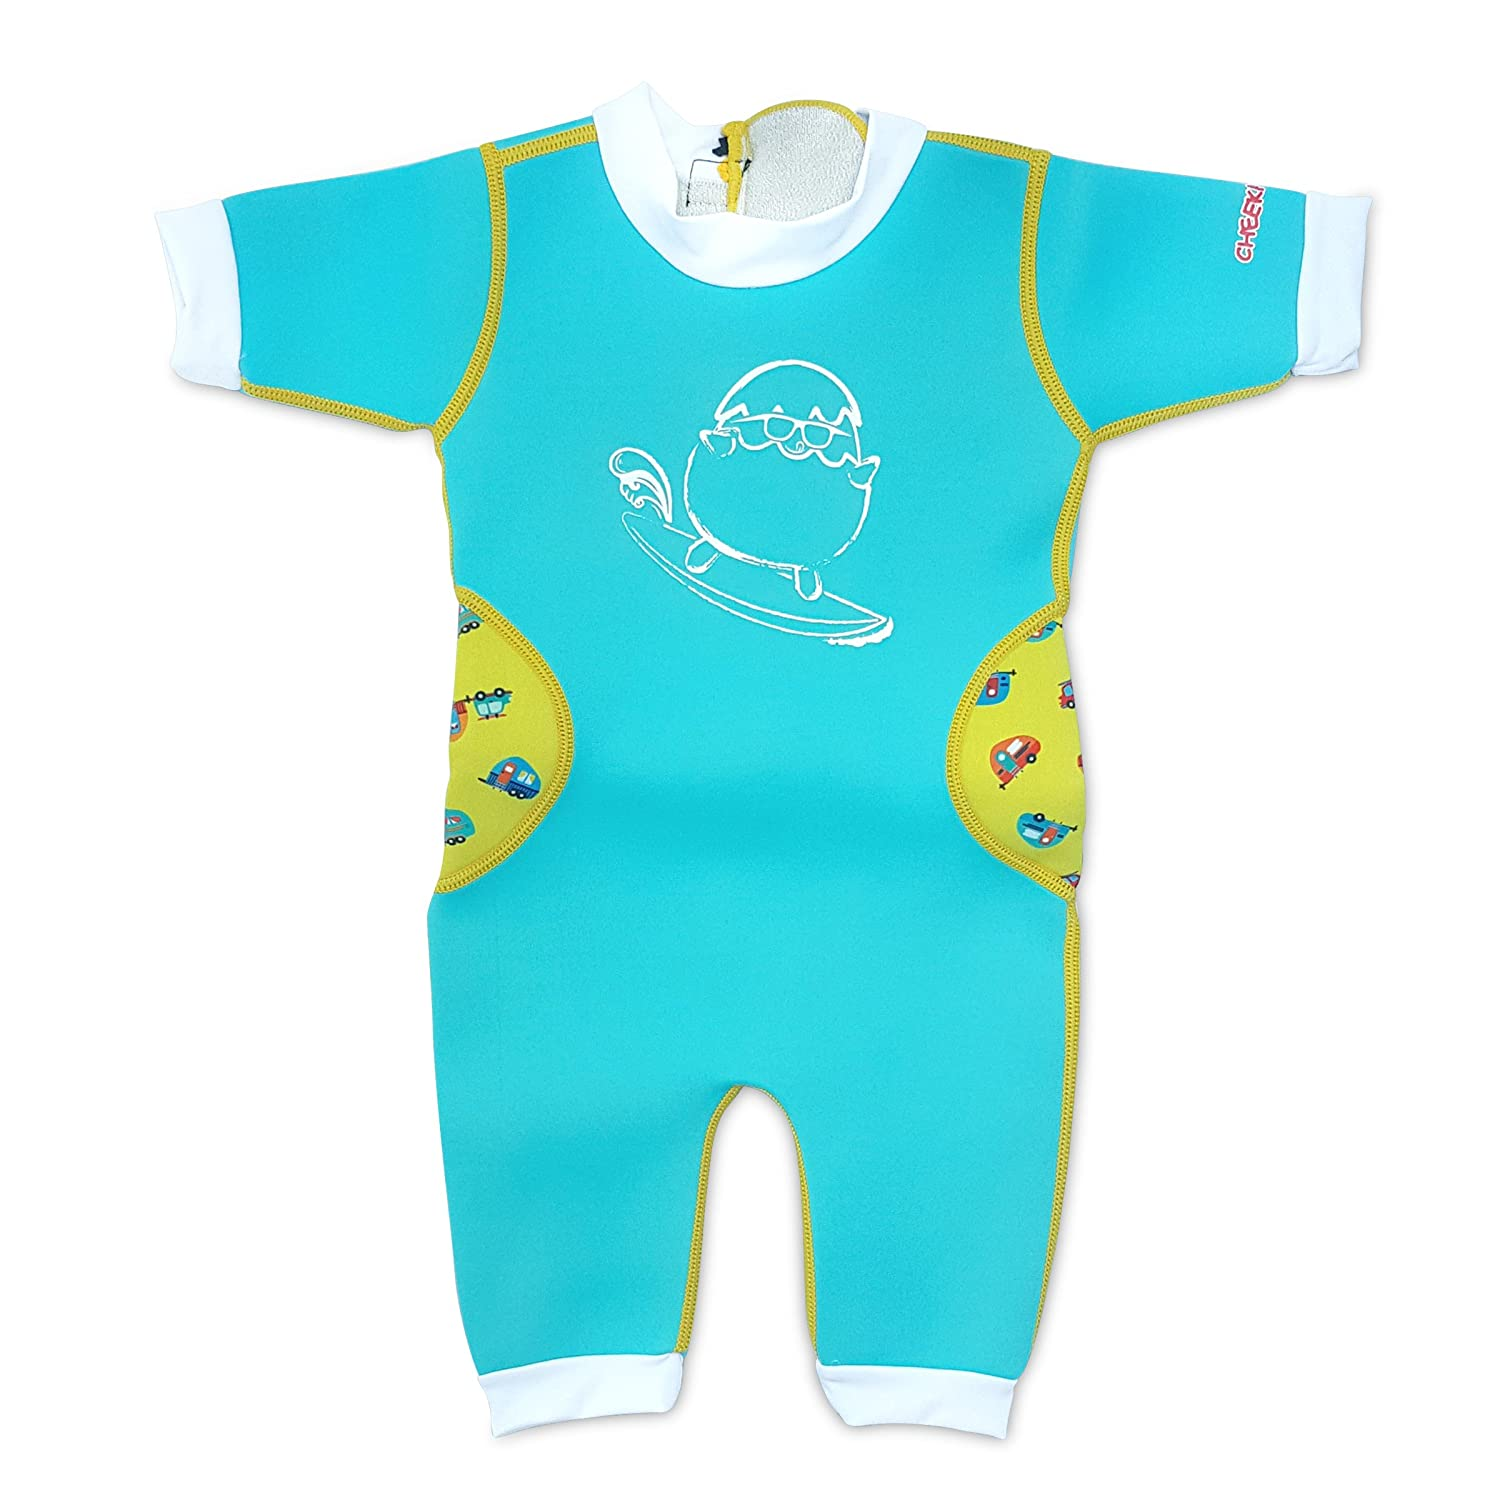 Cheekaaboo Baby Warmiebabes 2mm Insulating Neoprene UPF 50+ Swimsuit WBS-LB/M.F-18 - 30 Months-$P